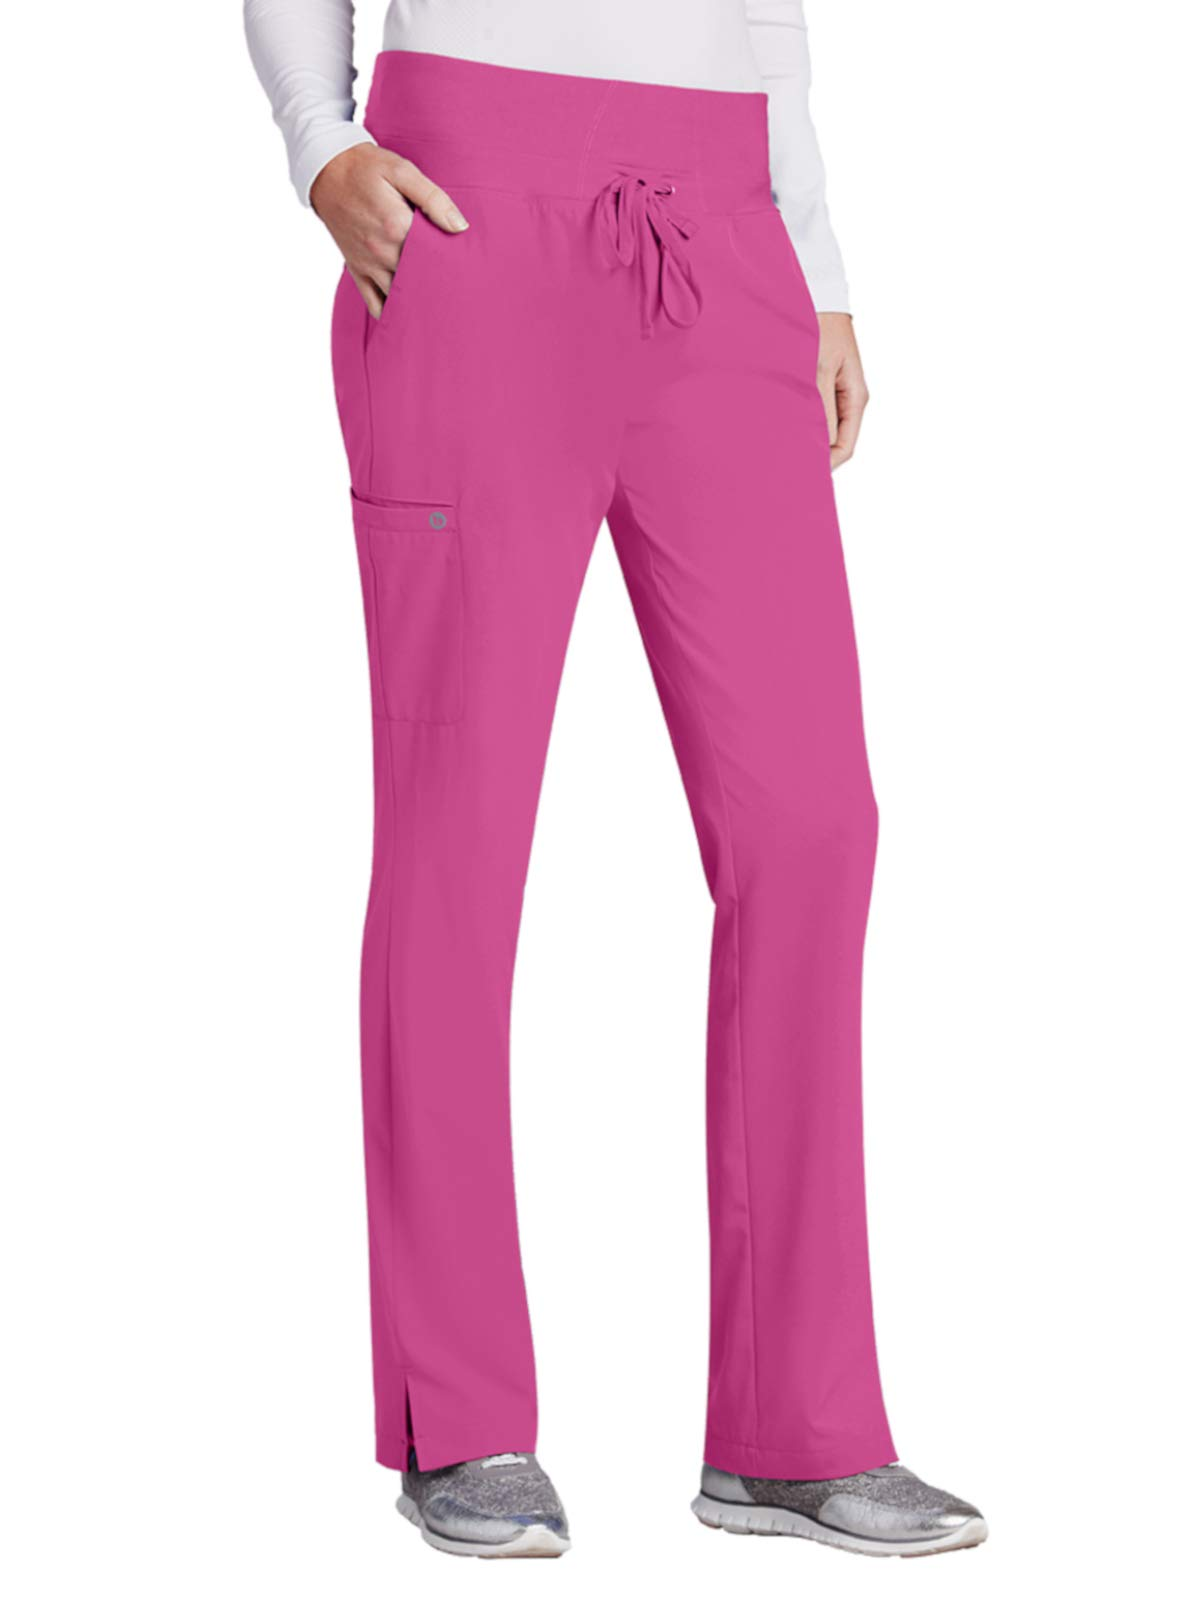 Barco One 5206 Midrise Cargo Pant Power Pink L Tall